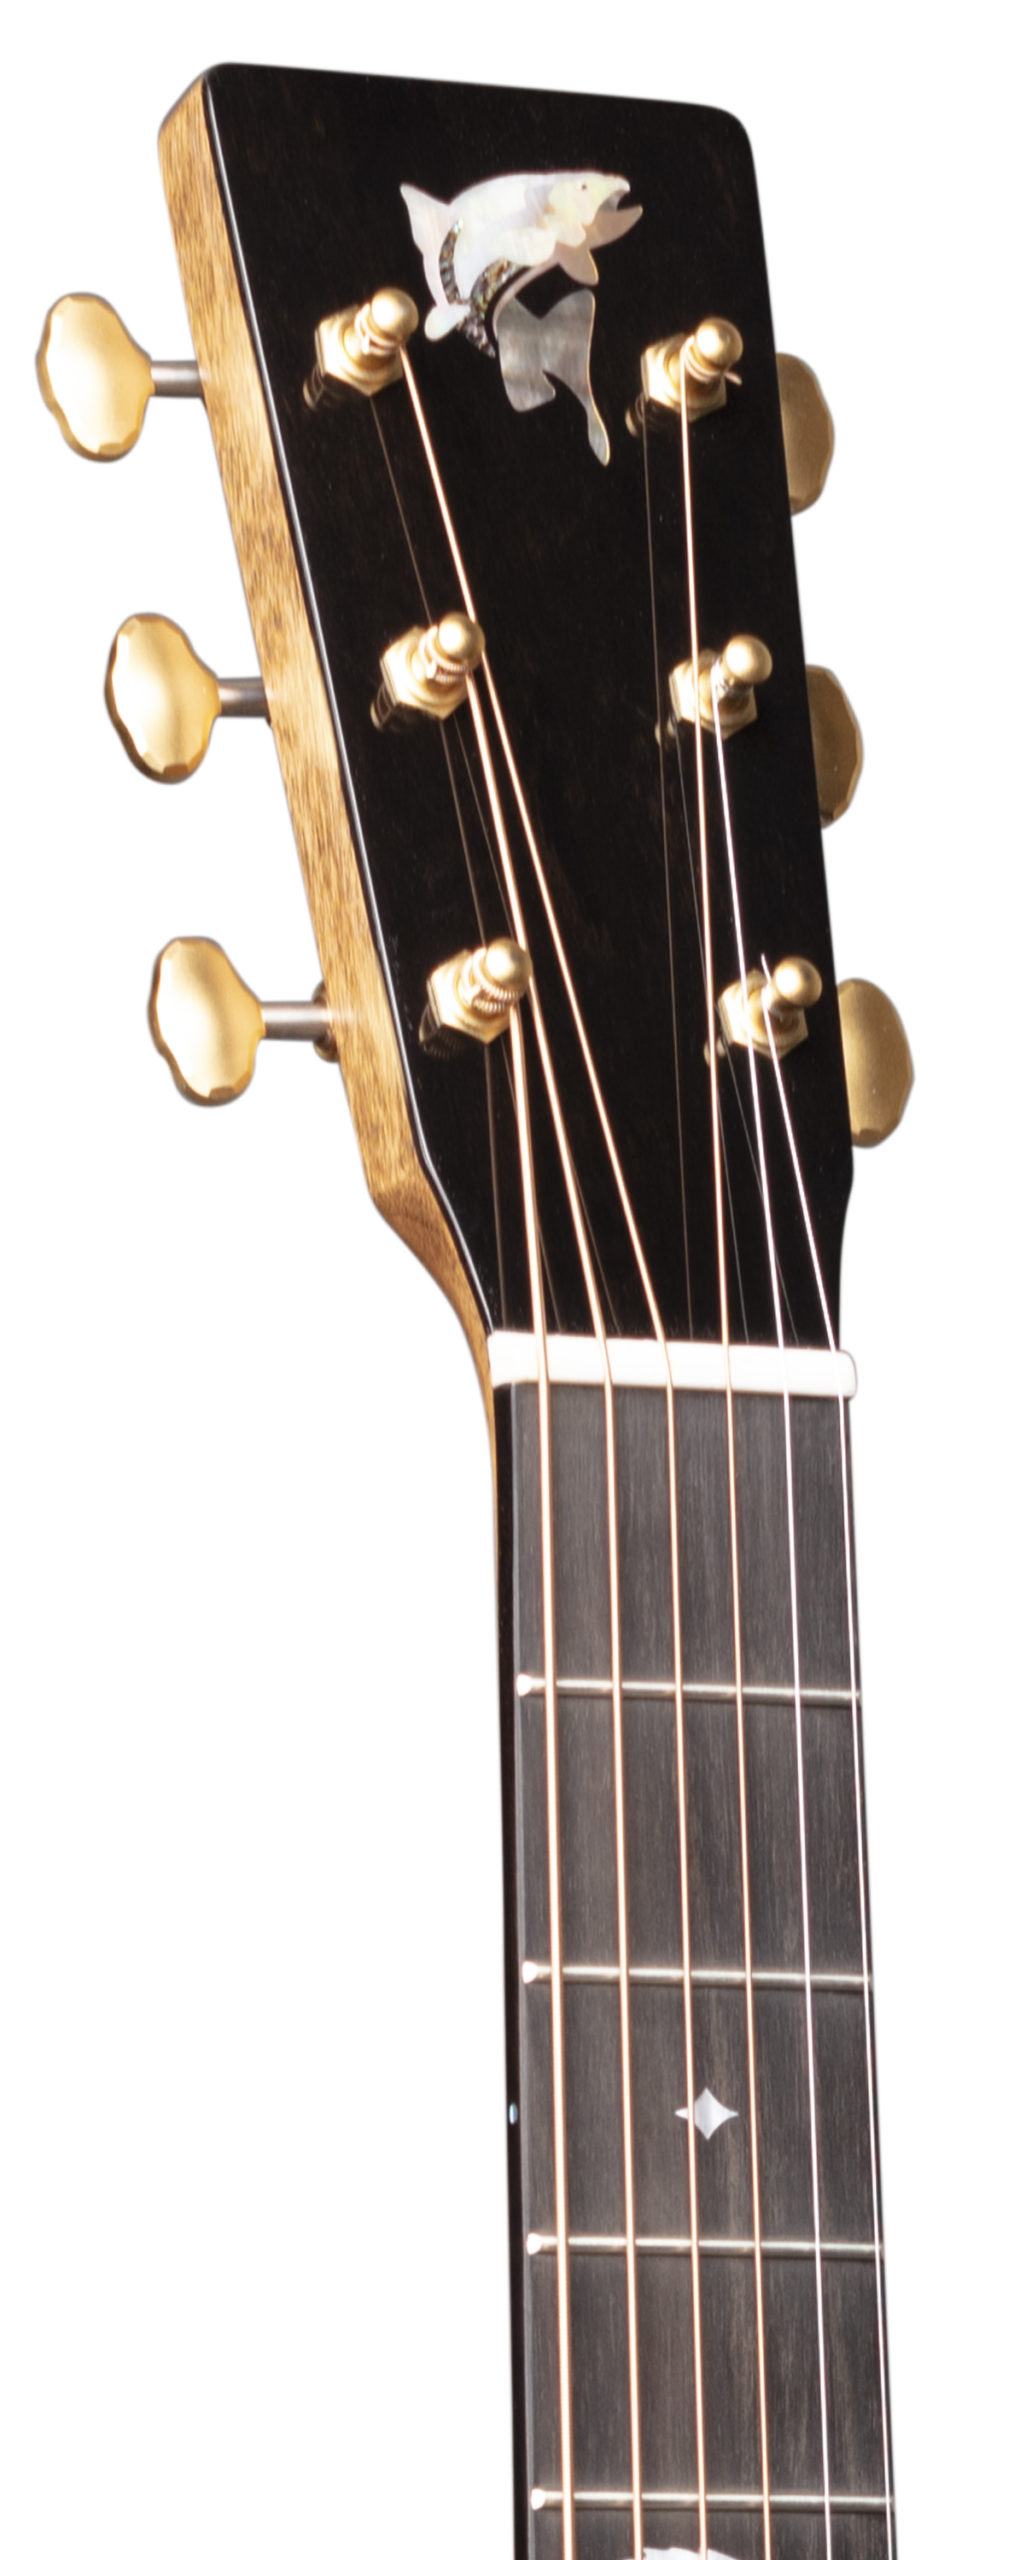 Martin 00L Fly Fishing Guitar